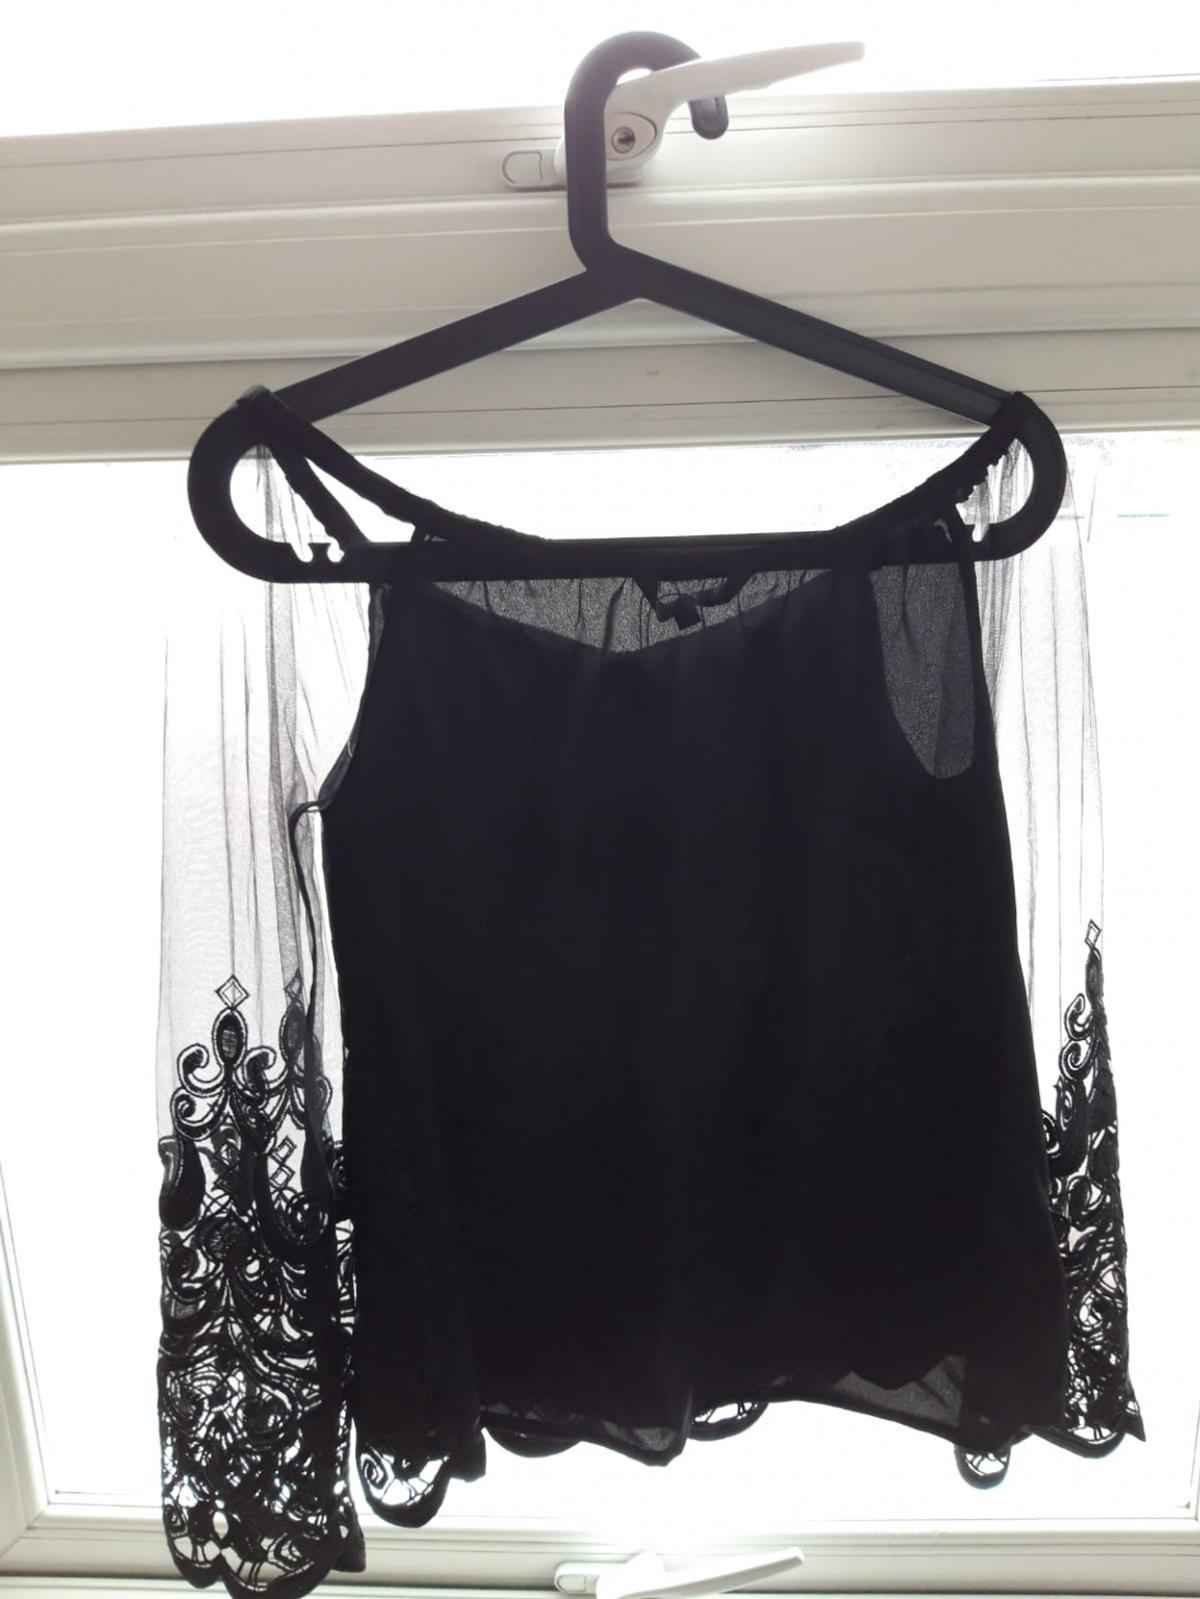 Brand new top. Made of mesh and embroidery. Size 10. From pet and smoke free home. Collection from Wallington area.